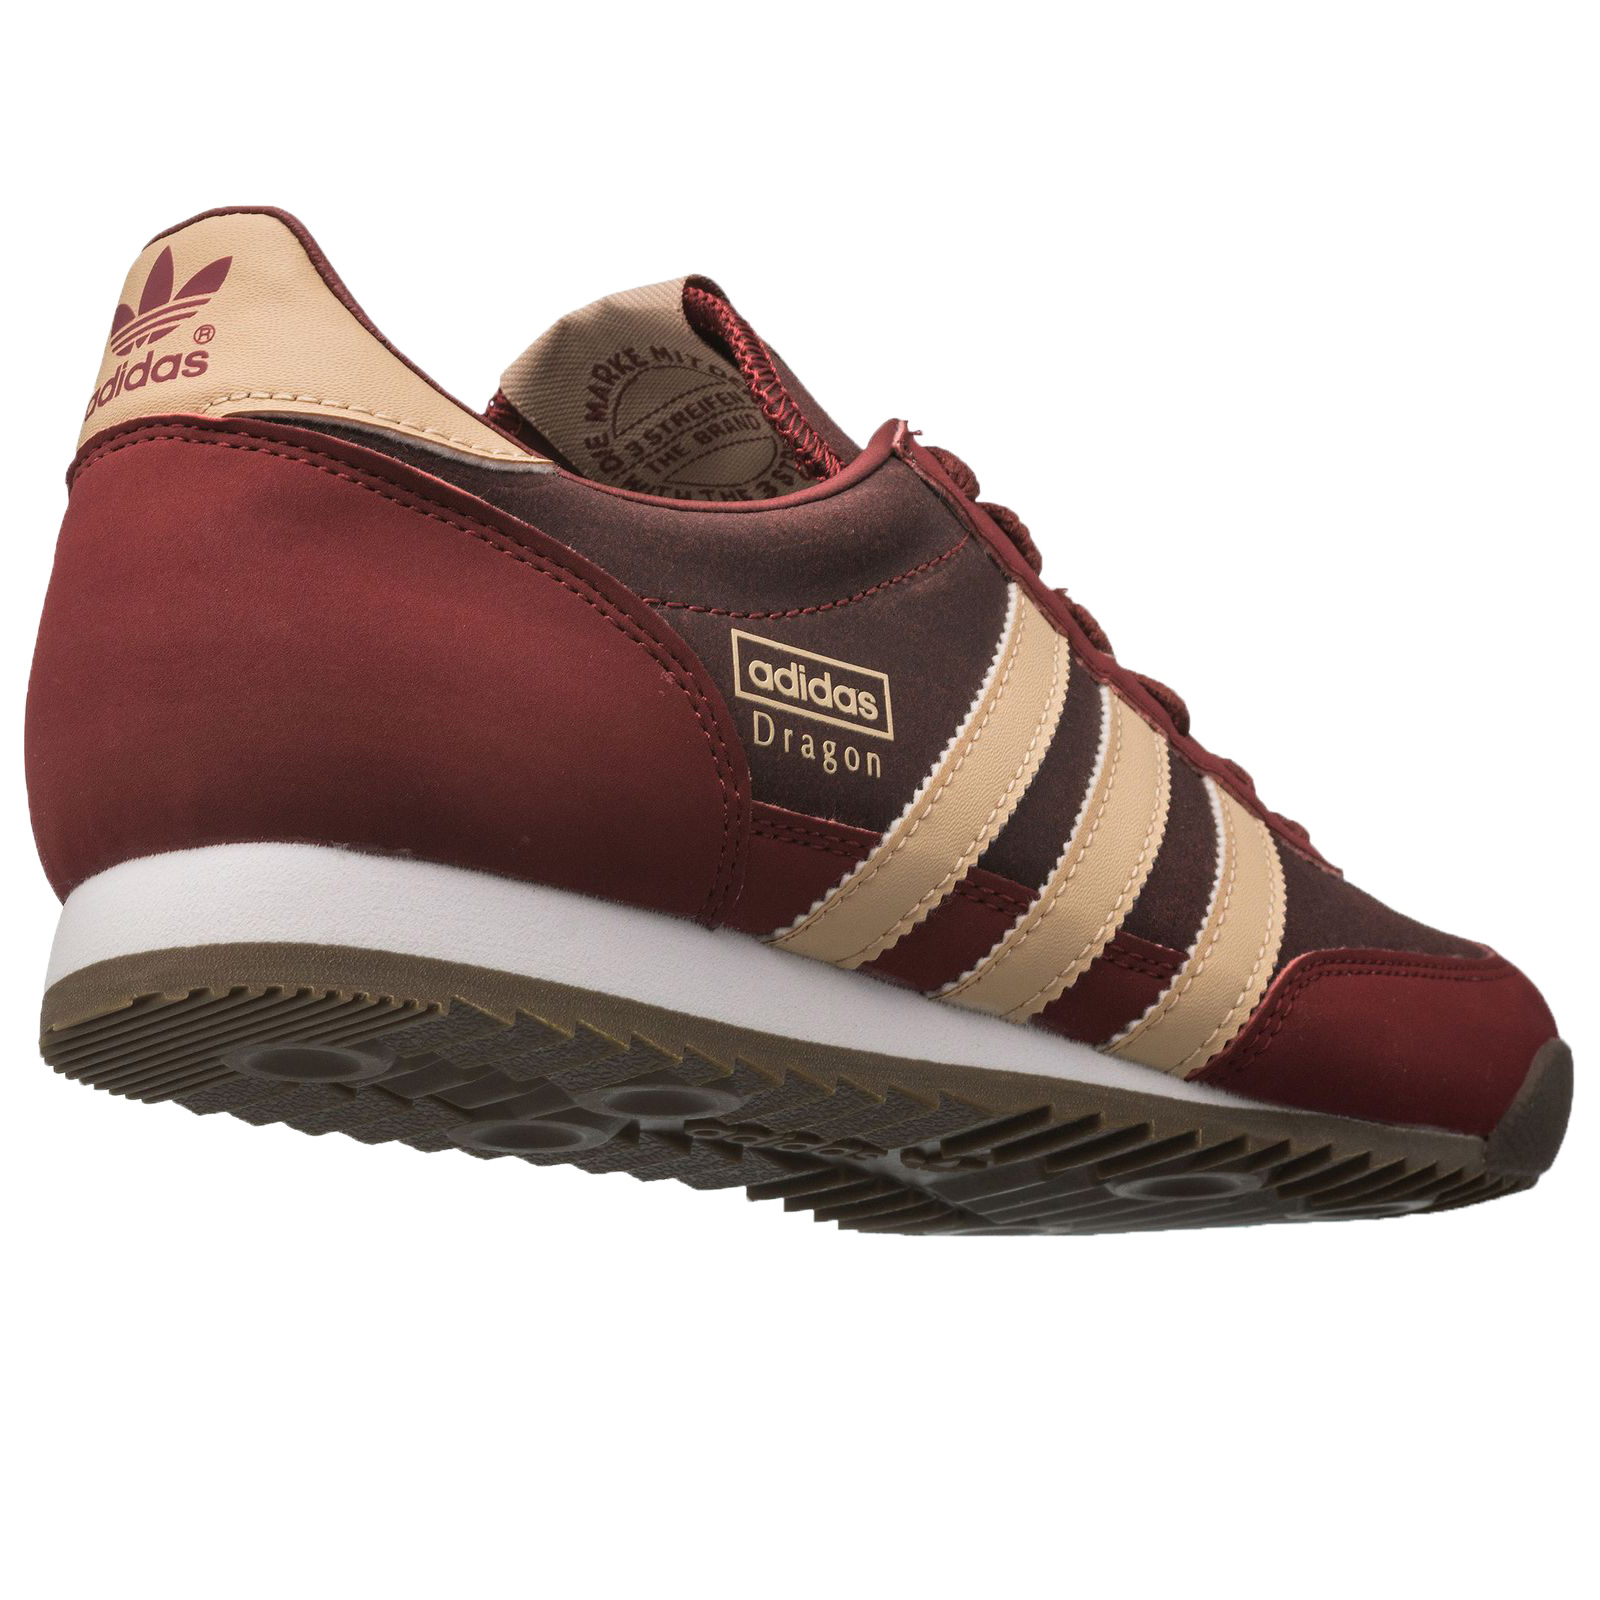 adidas dragon marron Online Shopping mall | Find the best prices ...